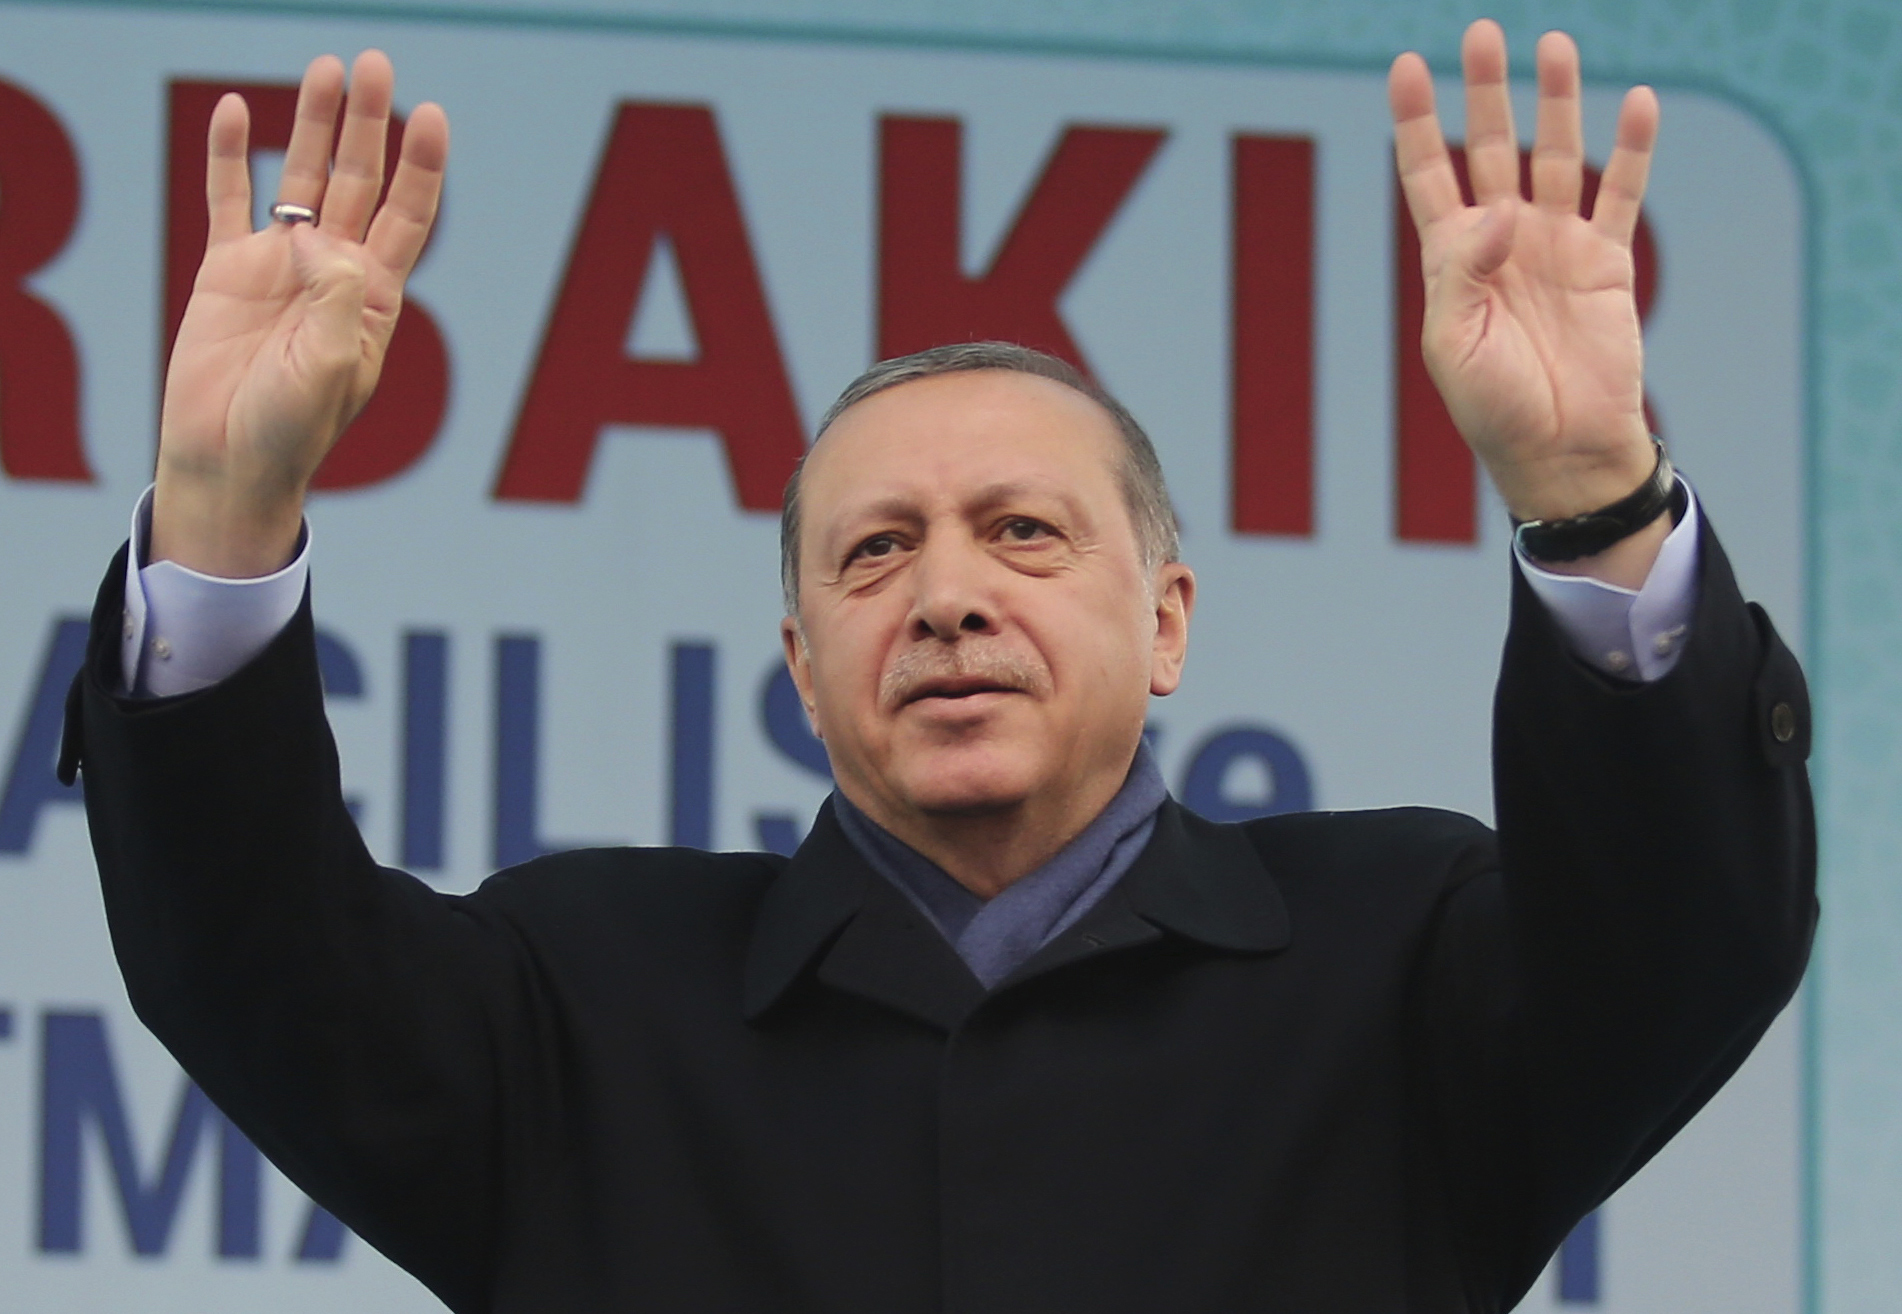 Turkey's President Recep Tayyip Erdogan waves to supporters prior to his speech during a rally ahead of the upcoming referendum, in the pre-dominantly Kurdish city of Diyarbakir, in southeastern Turkey, Saturday, April 1, 2017. Turkey is heading to a contentious April 16 referendum on constitutional reforms to expand Erdogan's powers. (AP Photo)